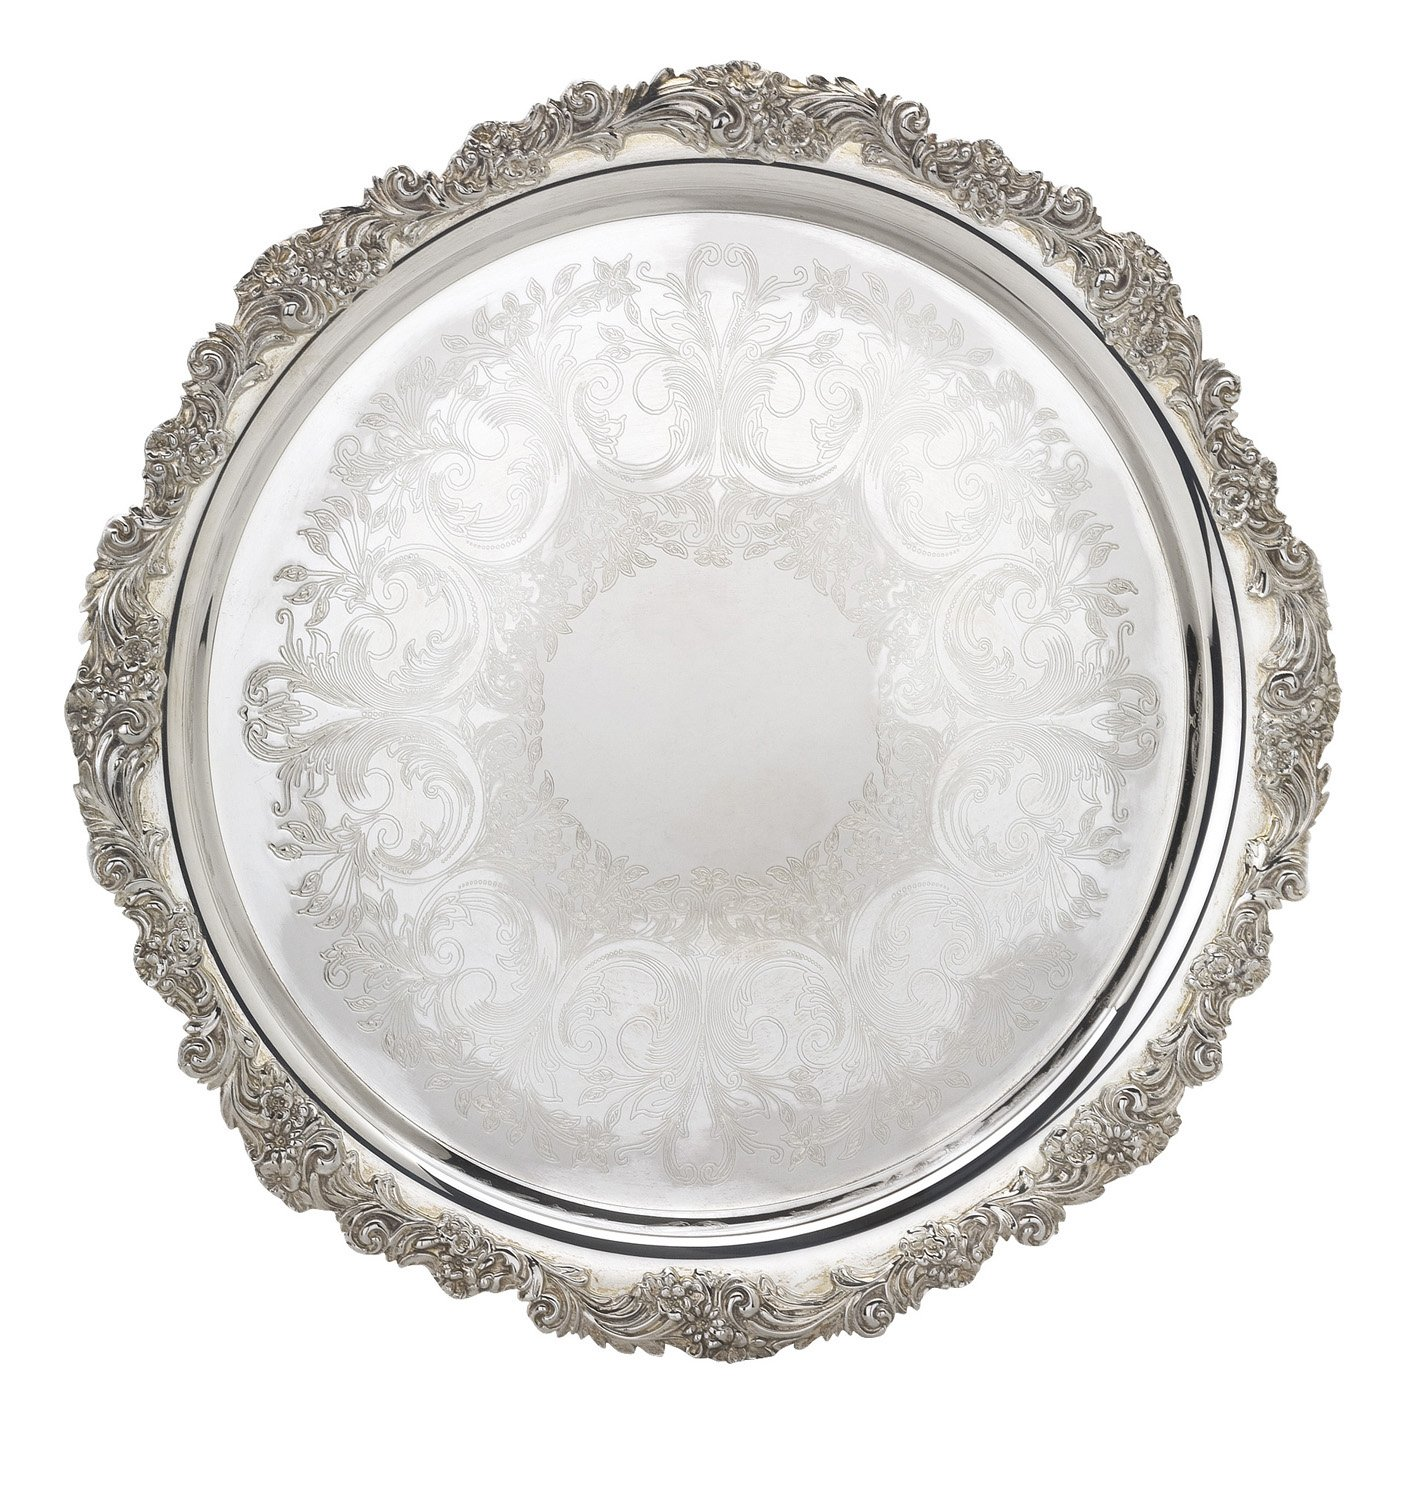 Reed & Barton S-2302 Silver Plated Engravable Round Tray, 13-Inch, Burgundy by Reed & Barton (Image #1)